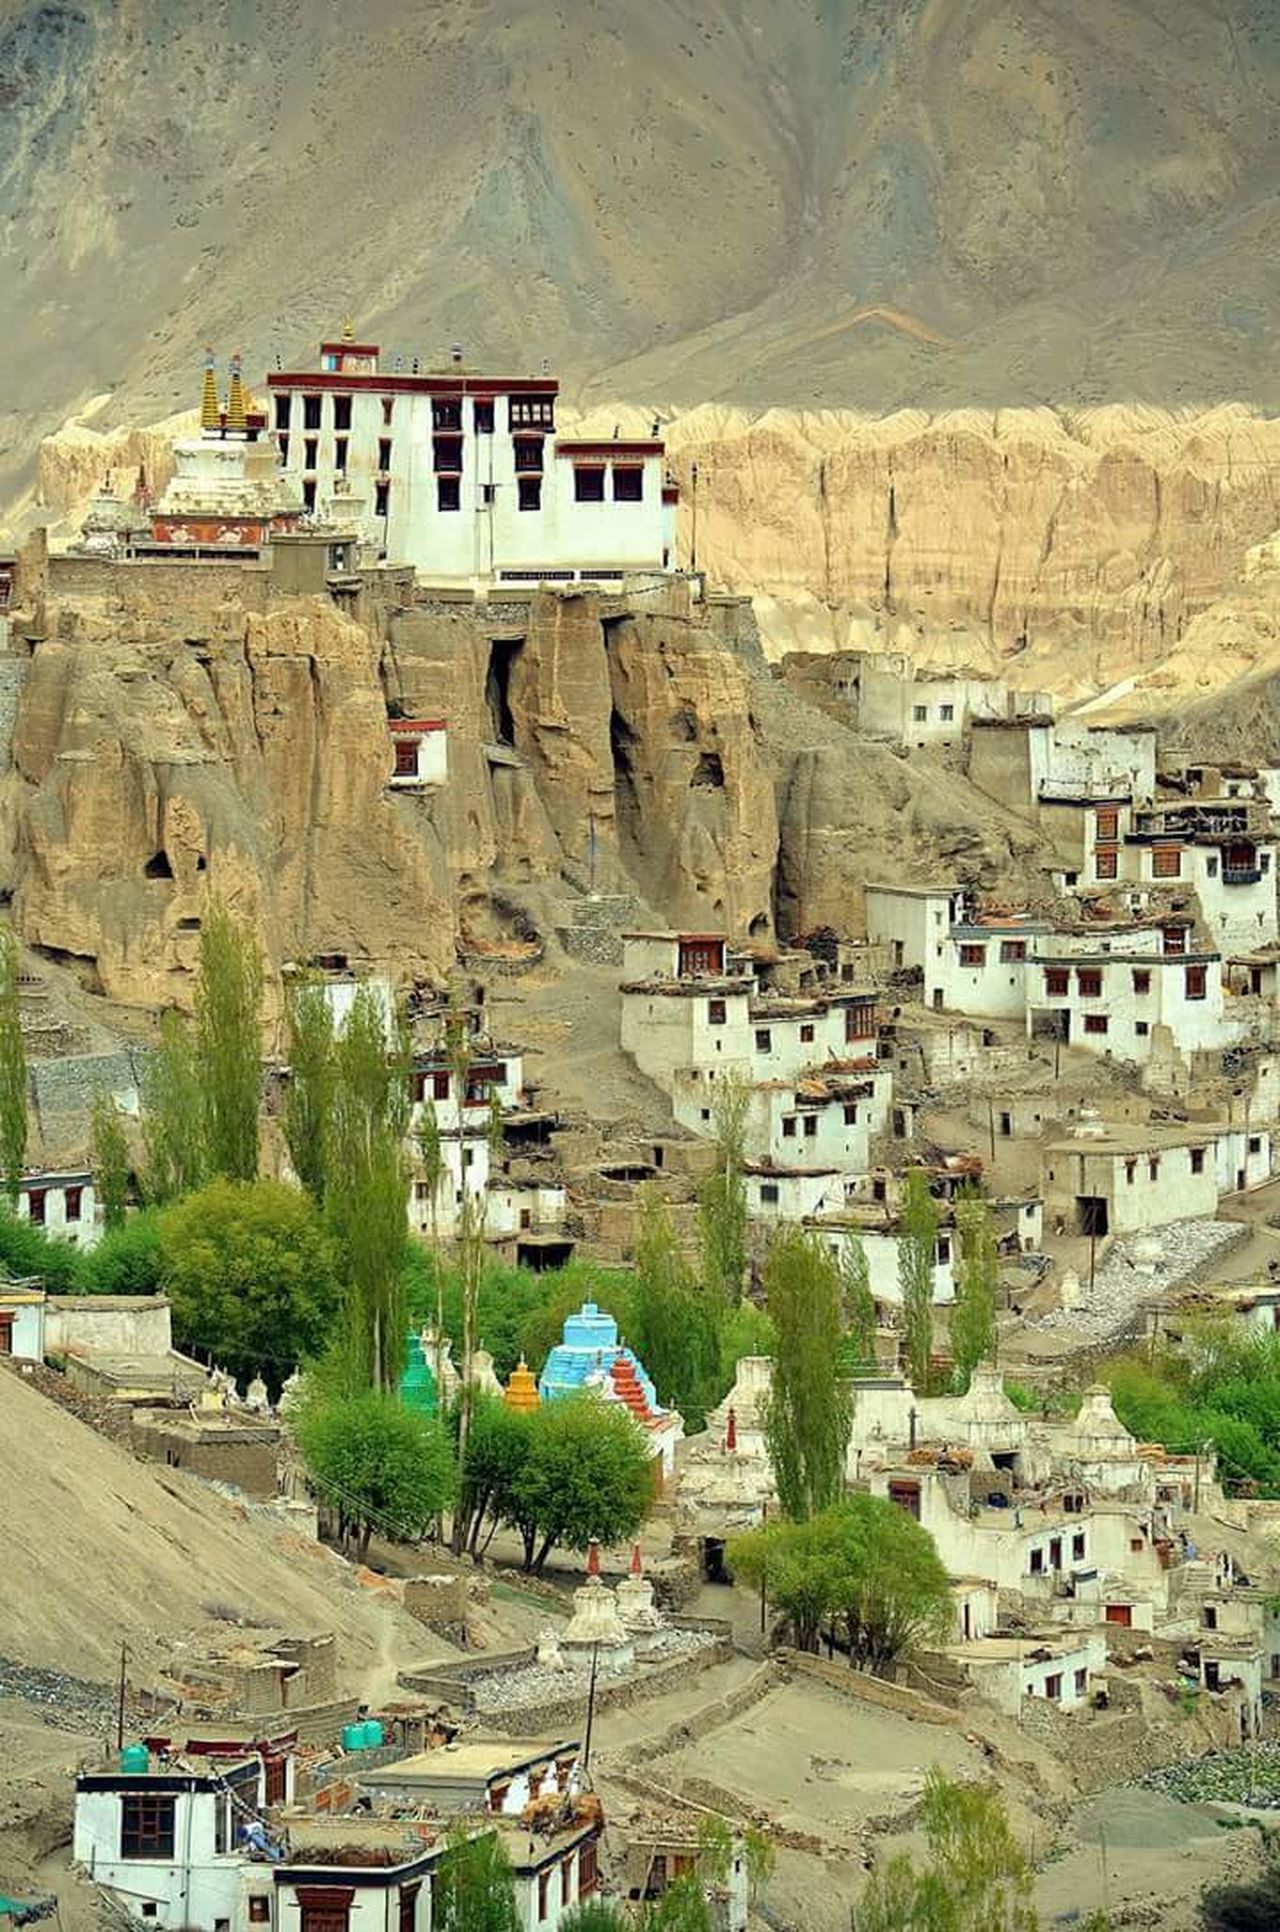 Lamayuru Village and Monastery Leh, India EyEmNewHere Himalayas Indianphotography Cold Desert India Traditional Culture Nature Outdoors Natural Disaster Travel Destinations